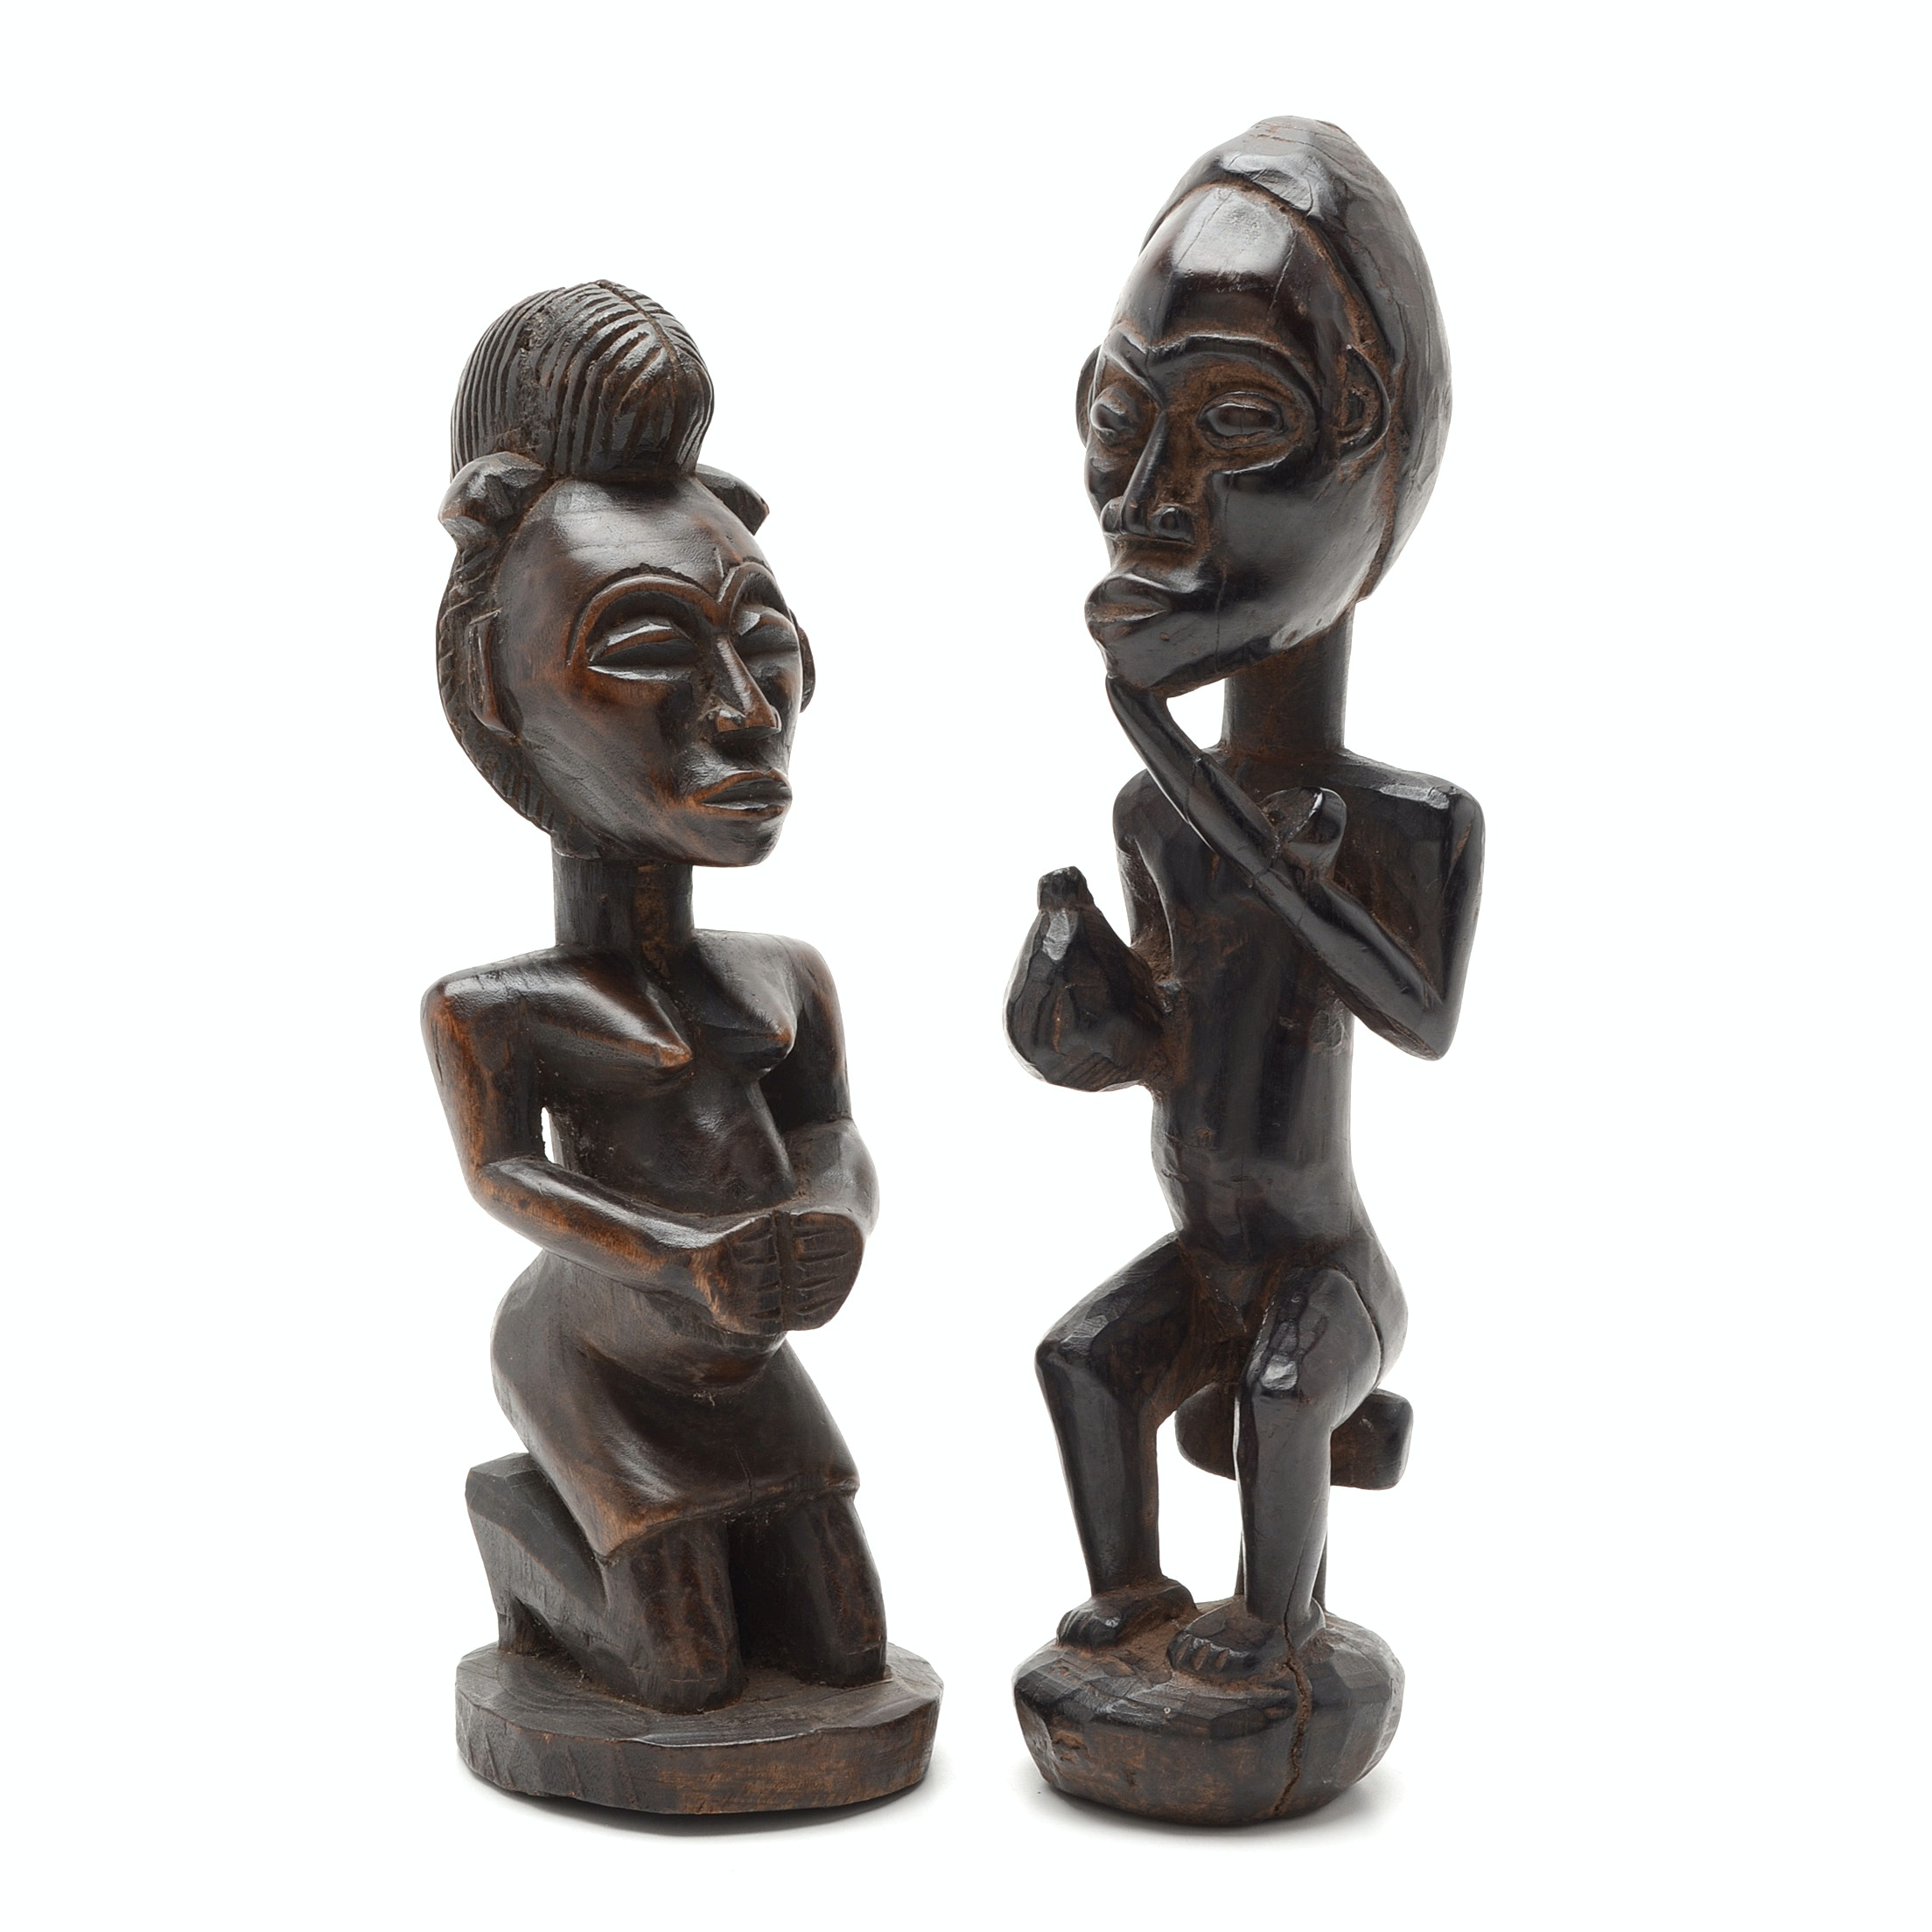 Early 20th Century Fang Culture Byeri Reliquary Carved Figures, Cameroon, Africa